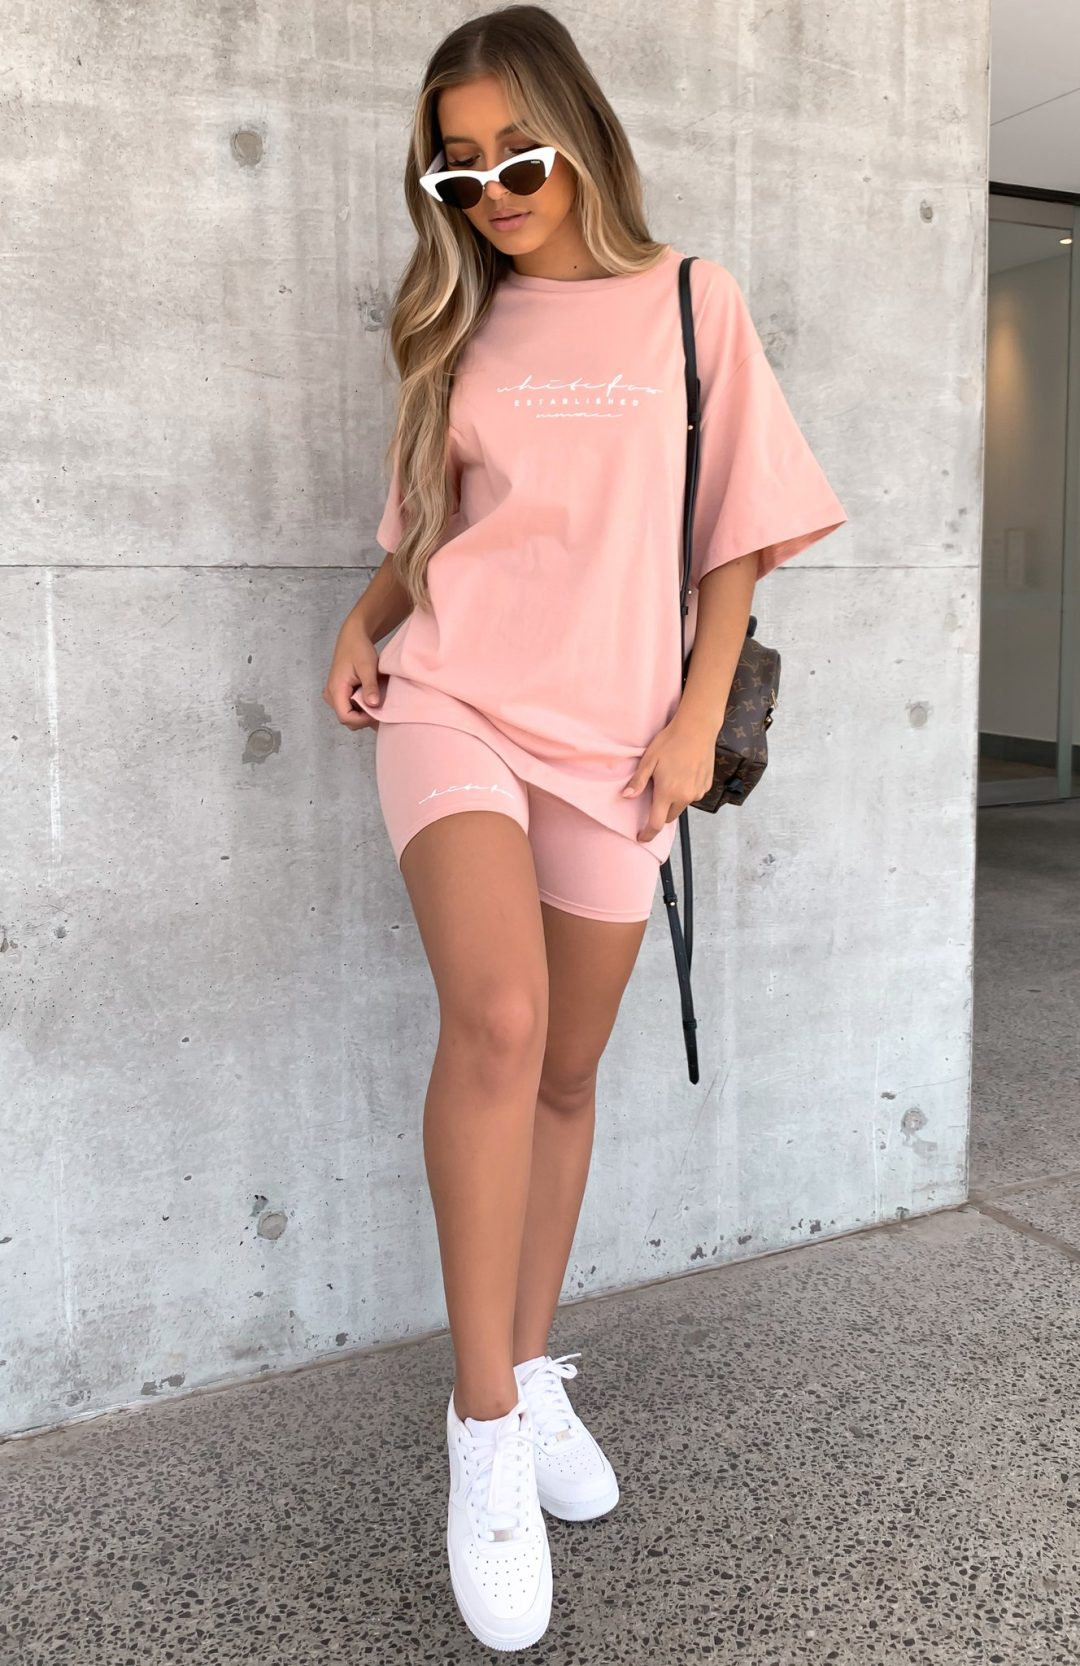 Matching light pink biker shorts outfit for airport